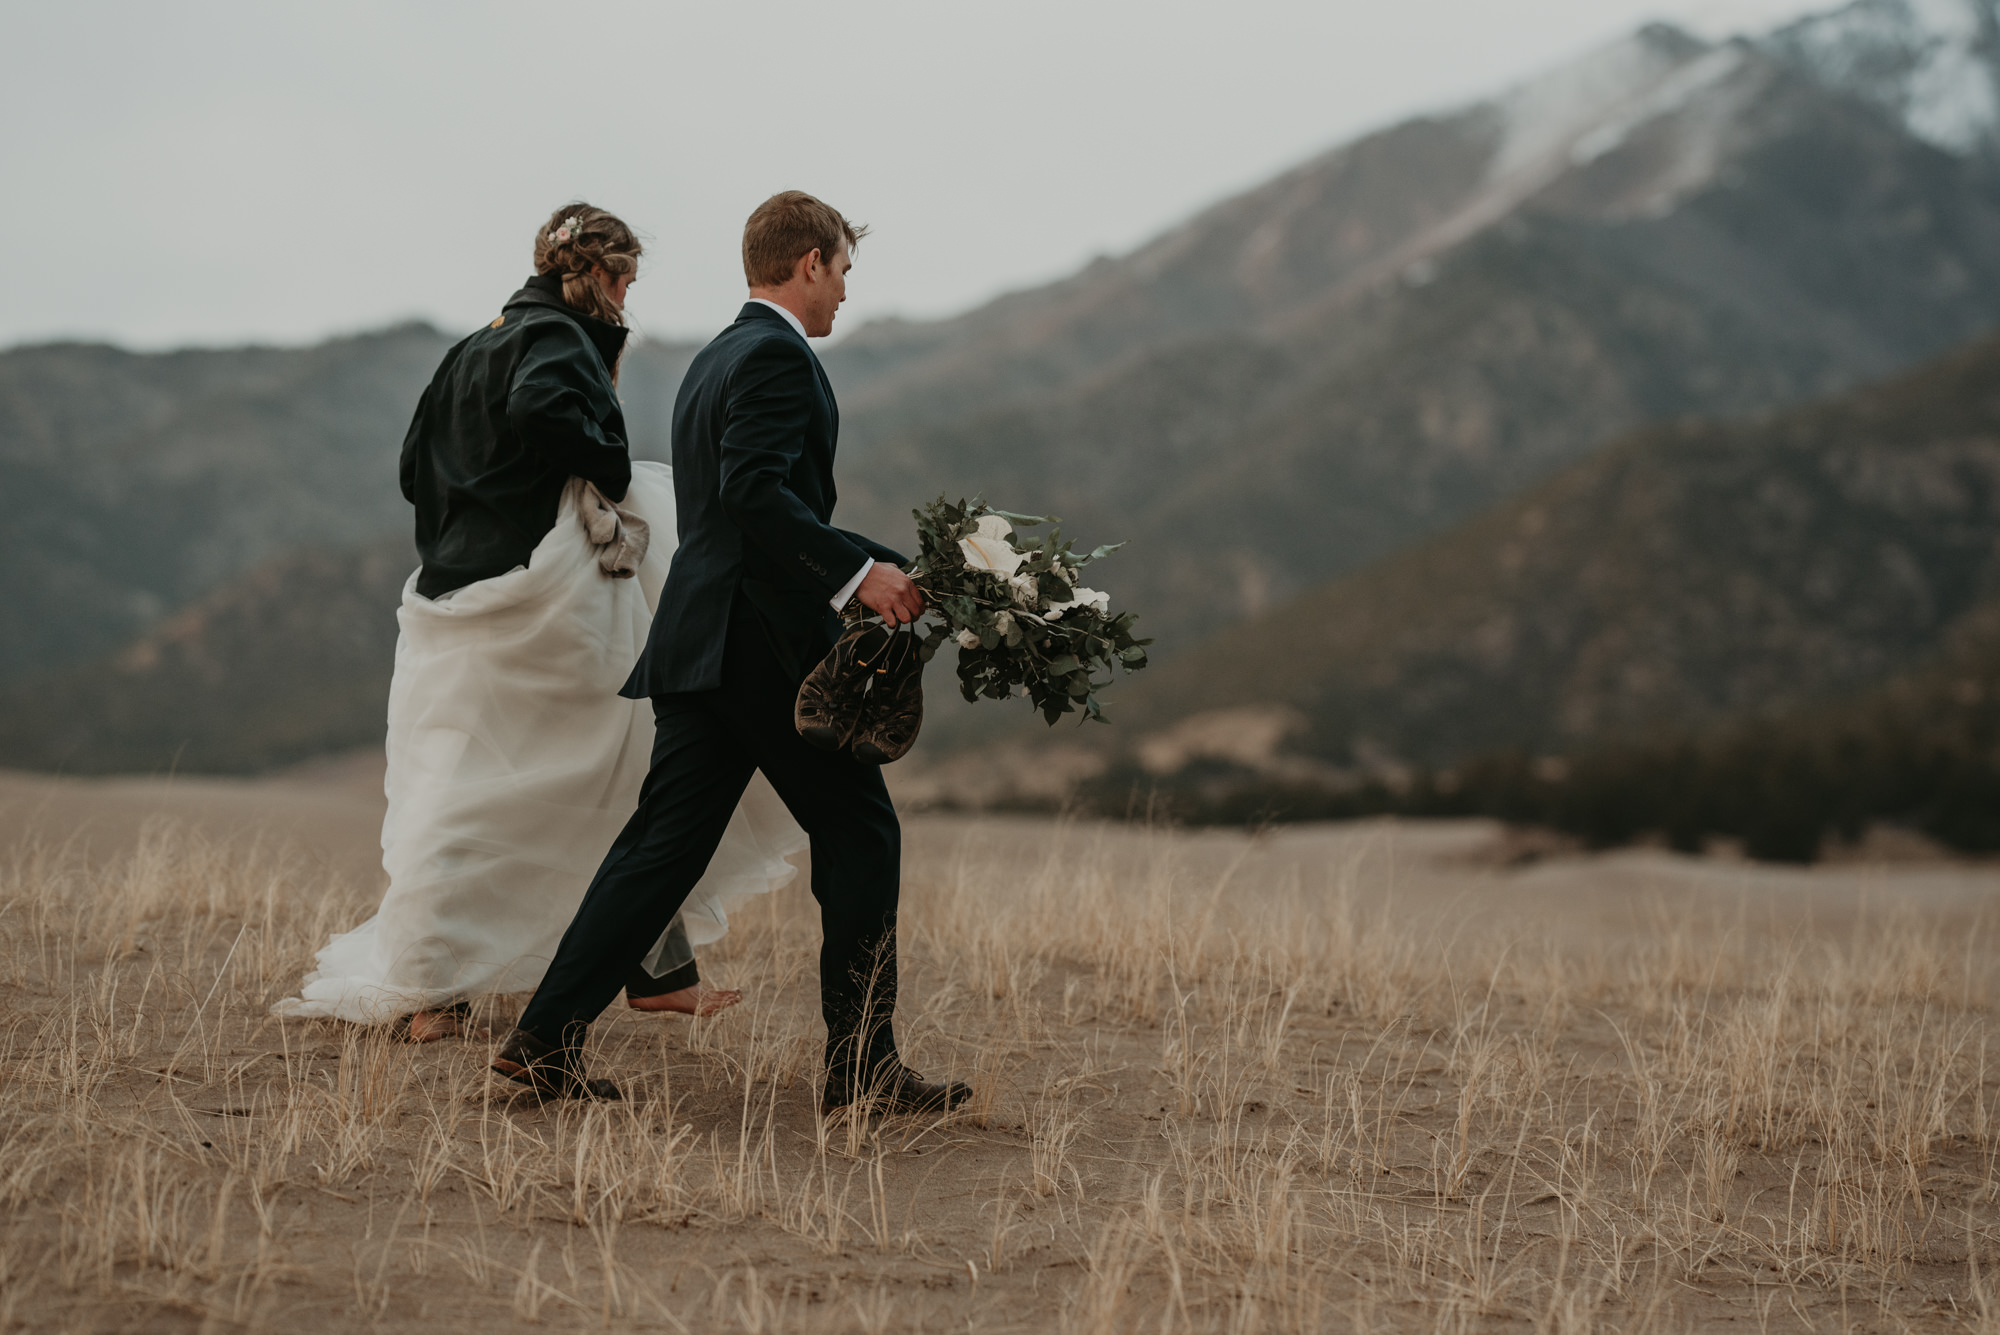 The Sand Dunes is one of the best places for hiking elopements in Colorado.